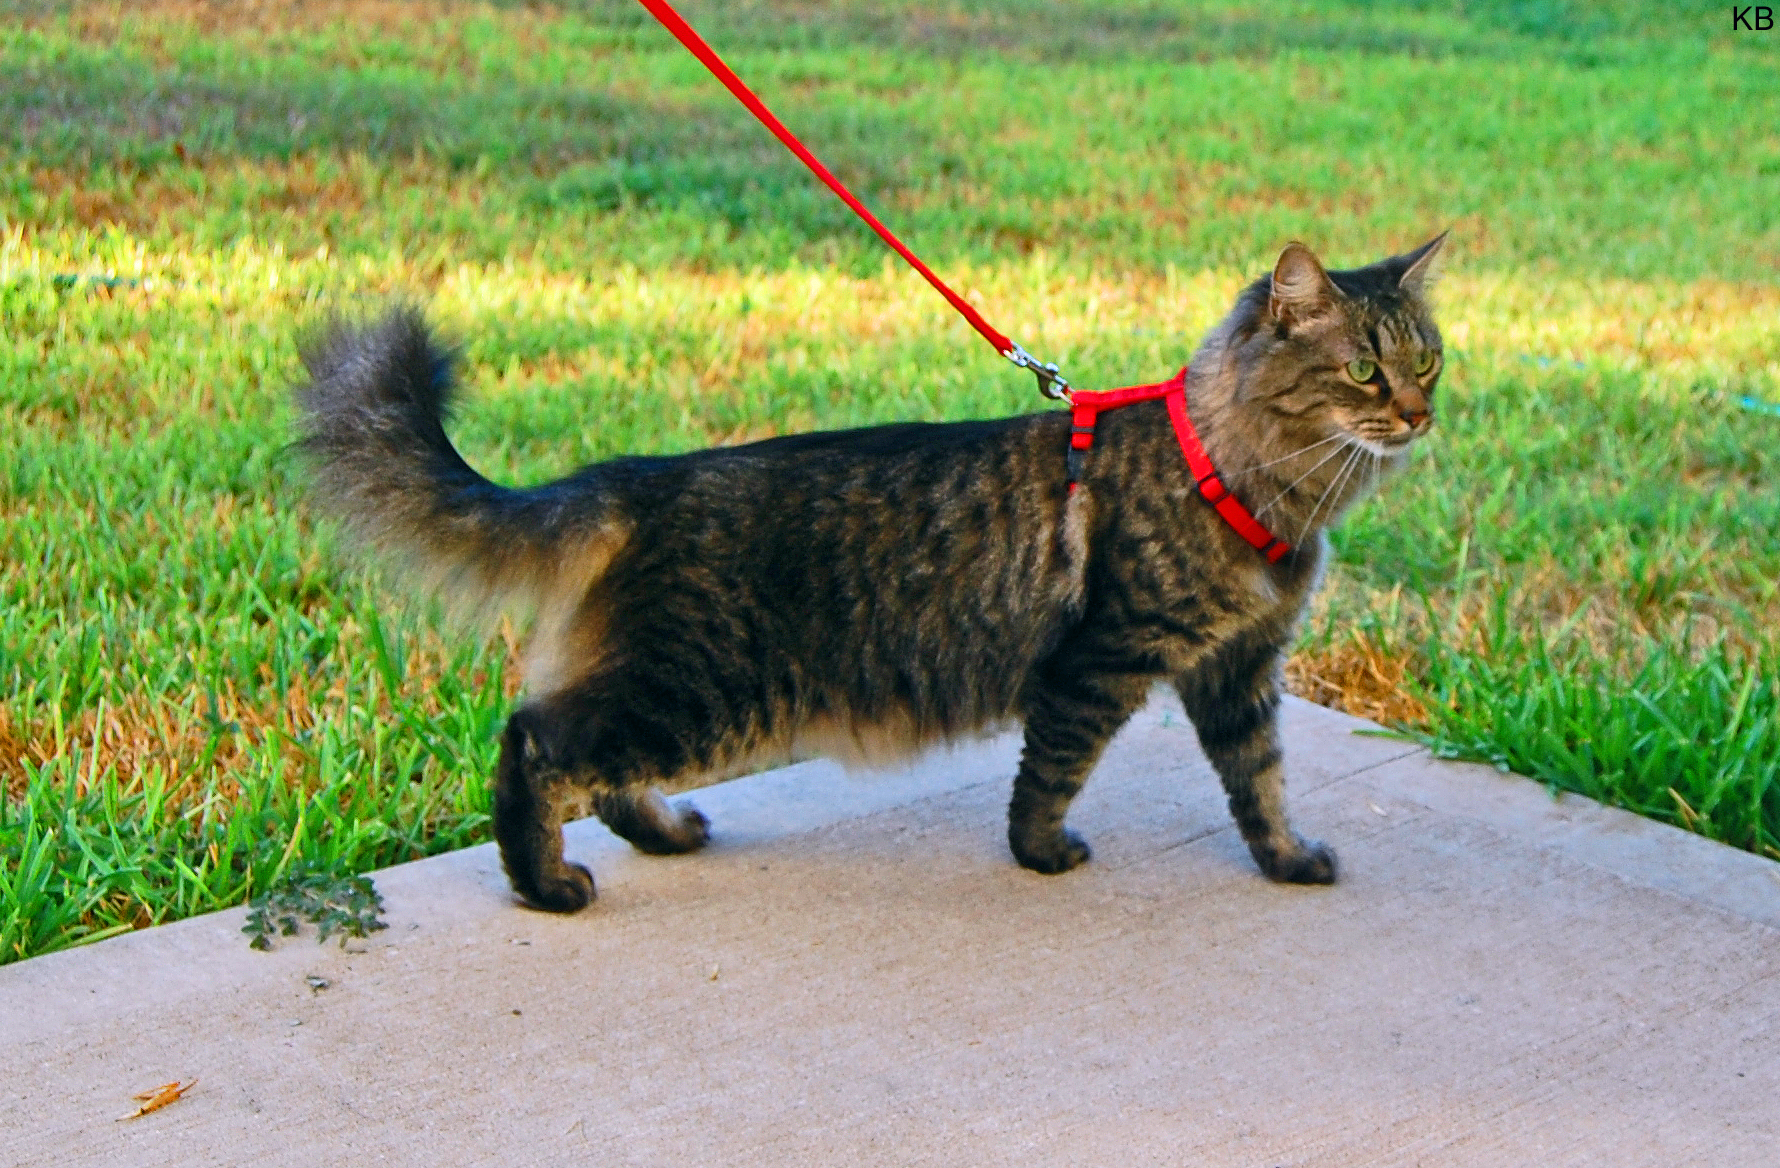 Cat_harness_and_leash.jpg#Cat%20on%20leash%201780x1168